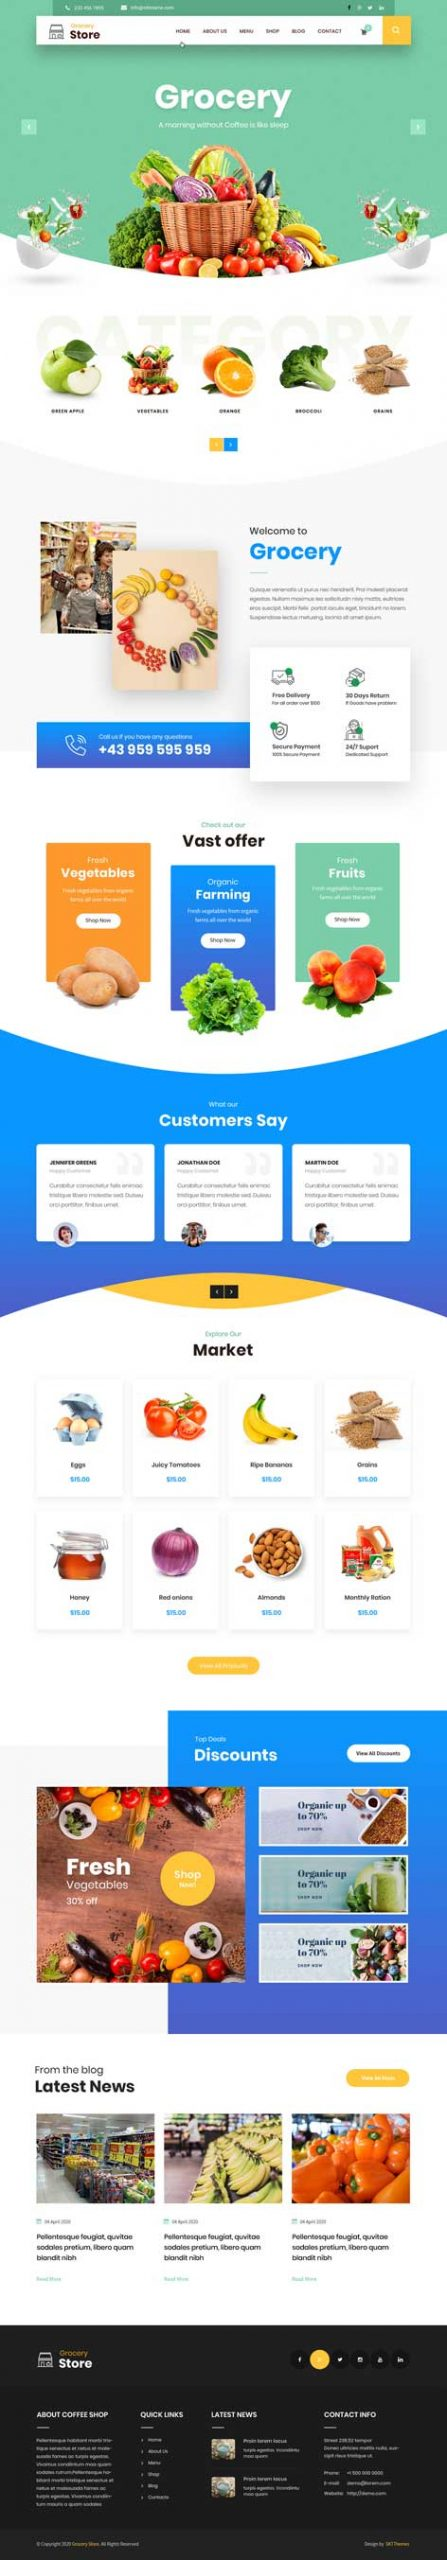 supermarket WordPress theme